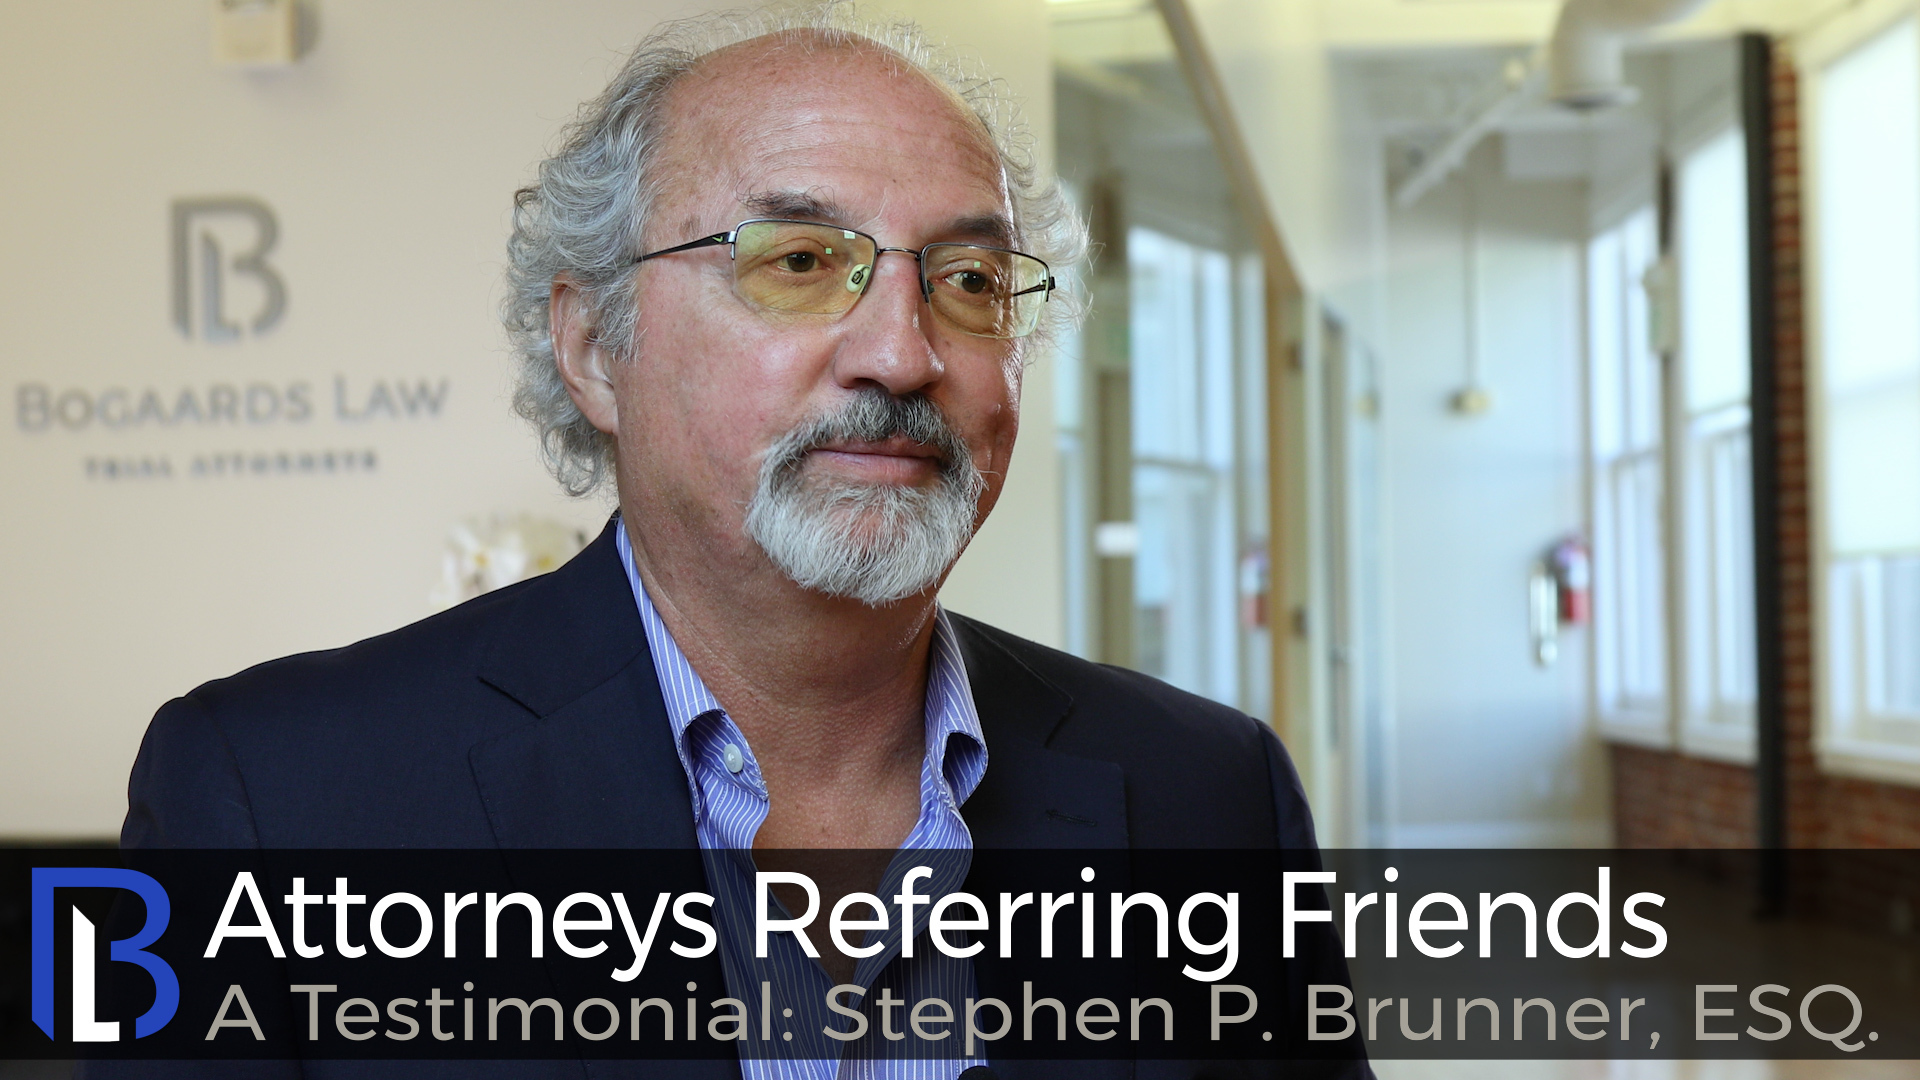 Attorneys Referring Friends--A Testimonial: Stephen P. Brunner, ESQ